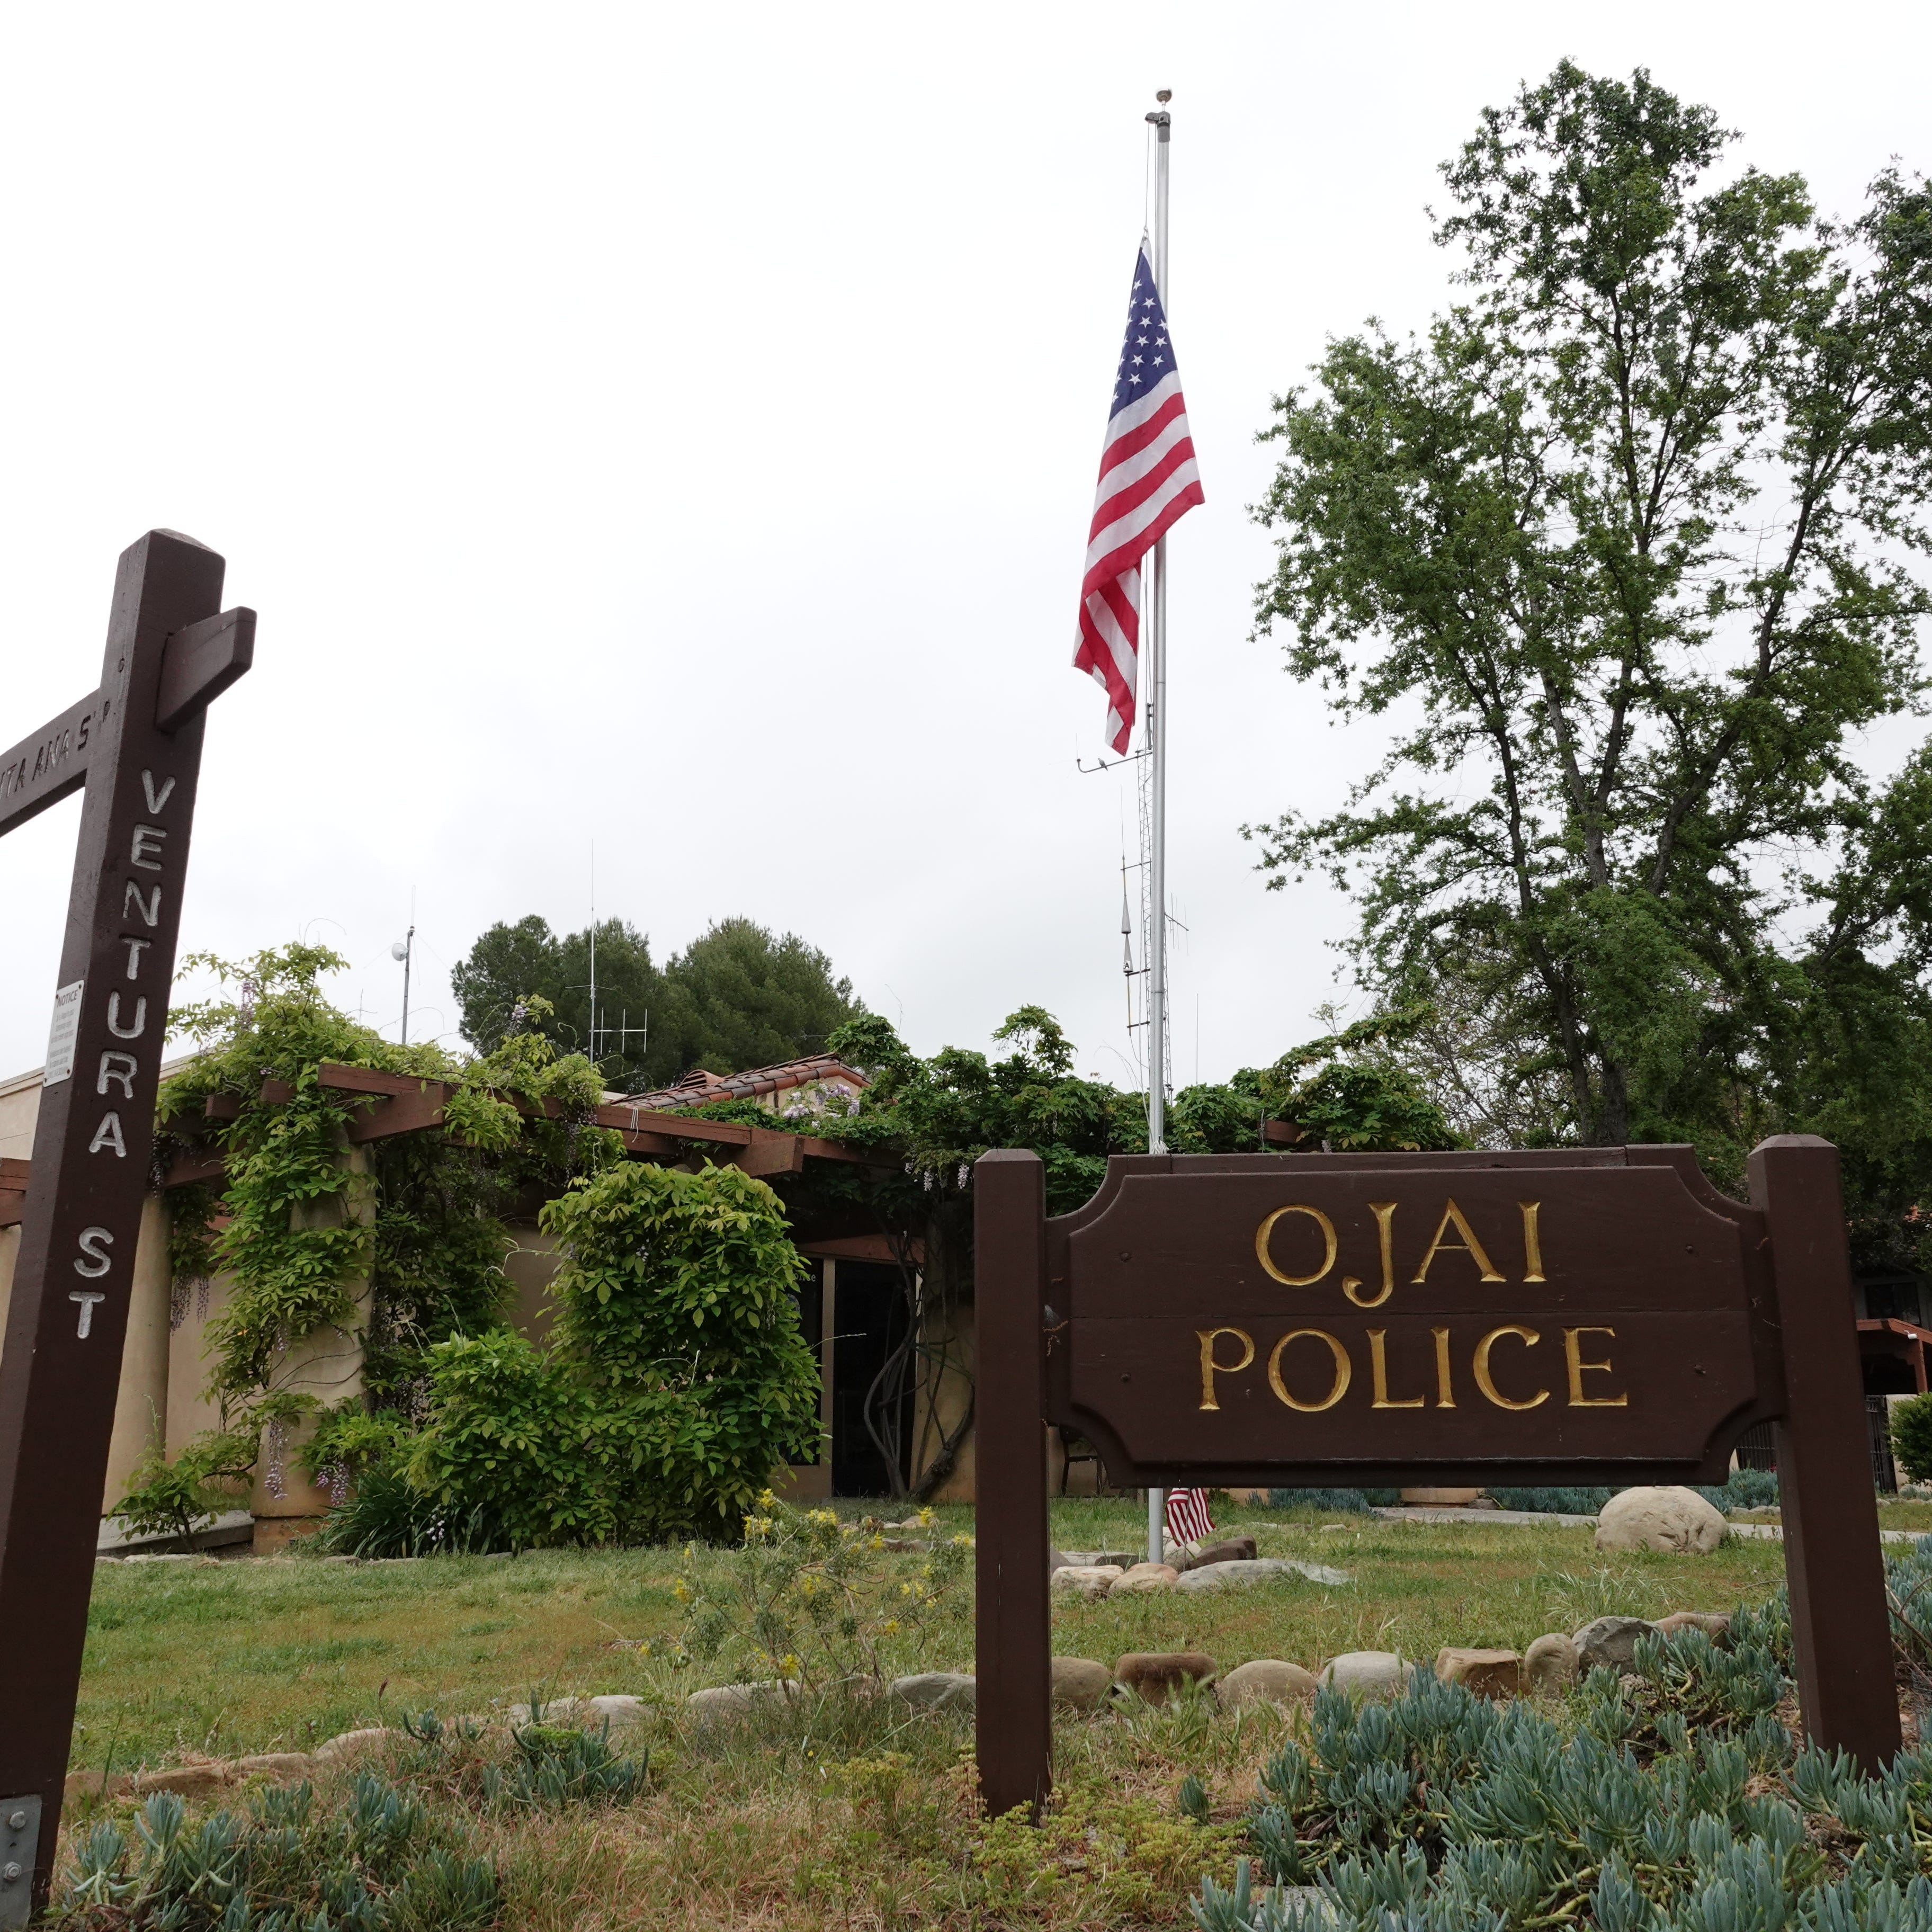 Officials name woman killed by vehicle in Ojai